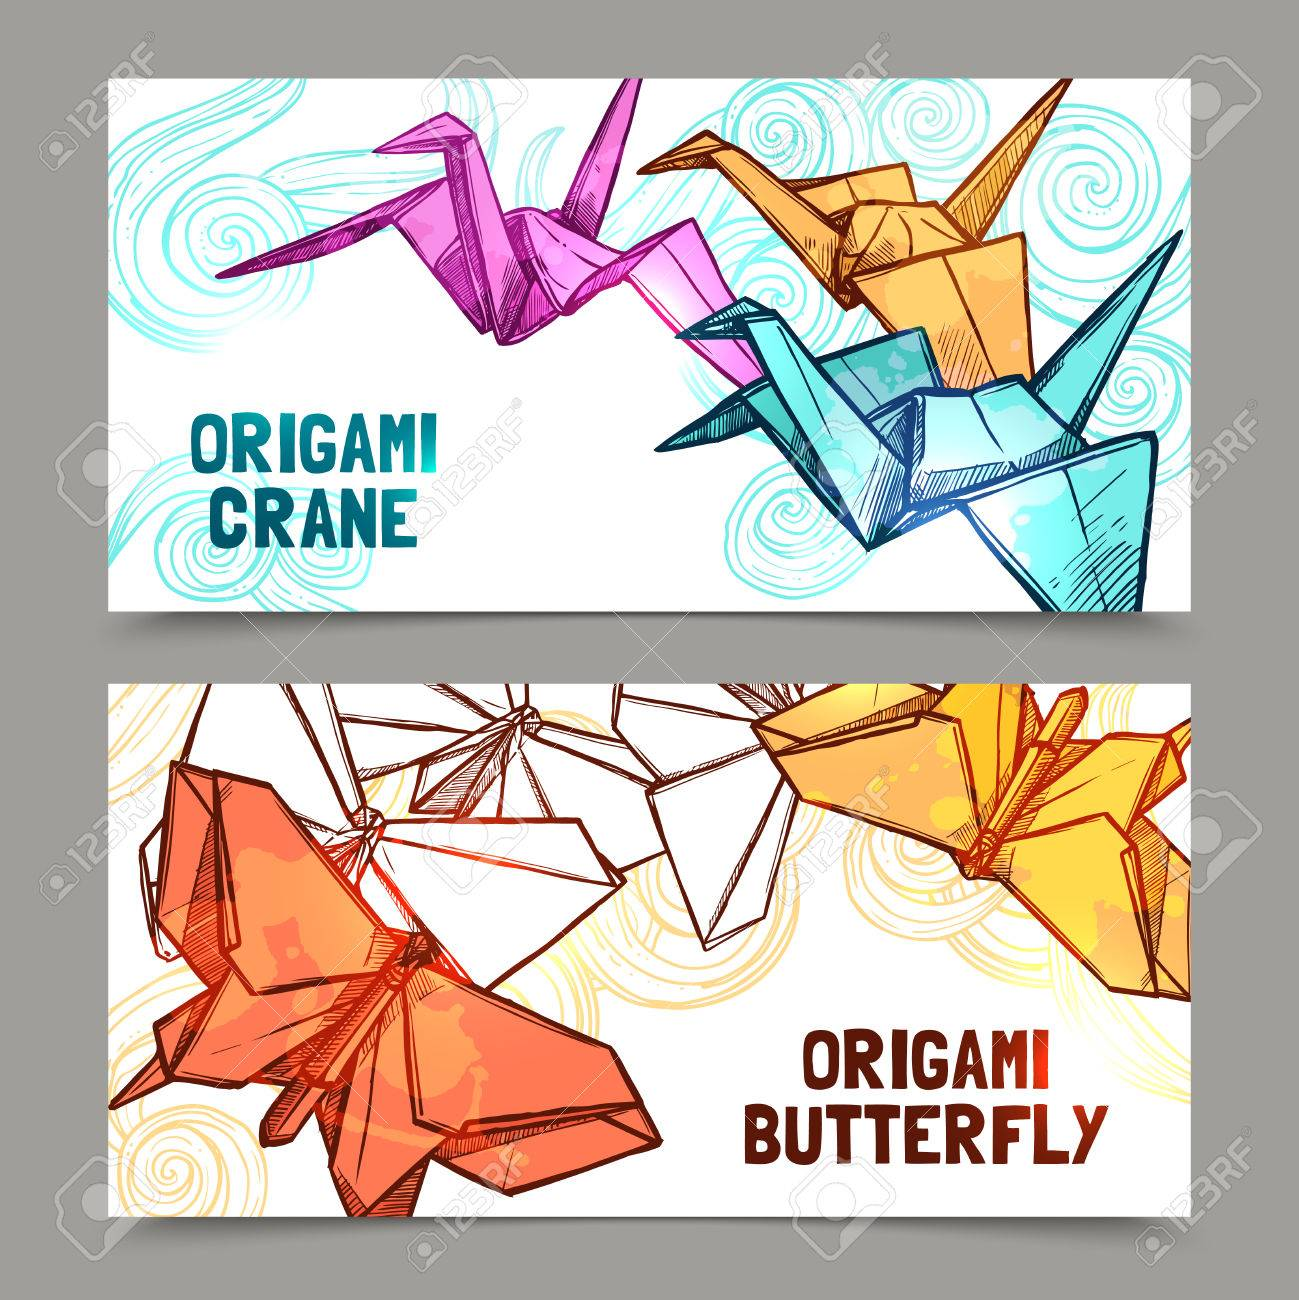 Origami butterflies and cranes paper folded symbols of hope origami butterflies and cranes paper folded symbols of hope 2 horizontal banners set abstract isolated vector buycottarizona Image collections